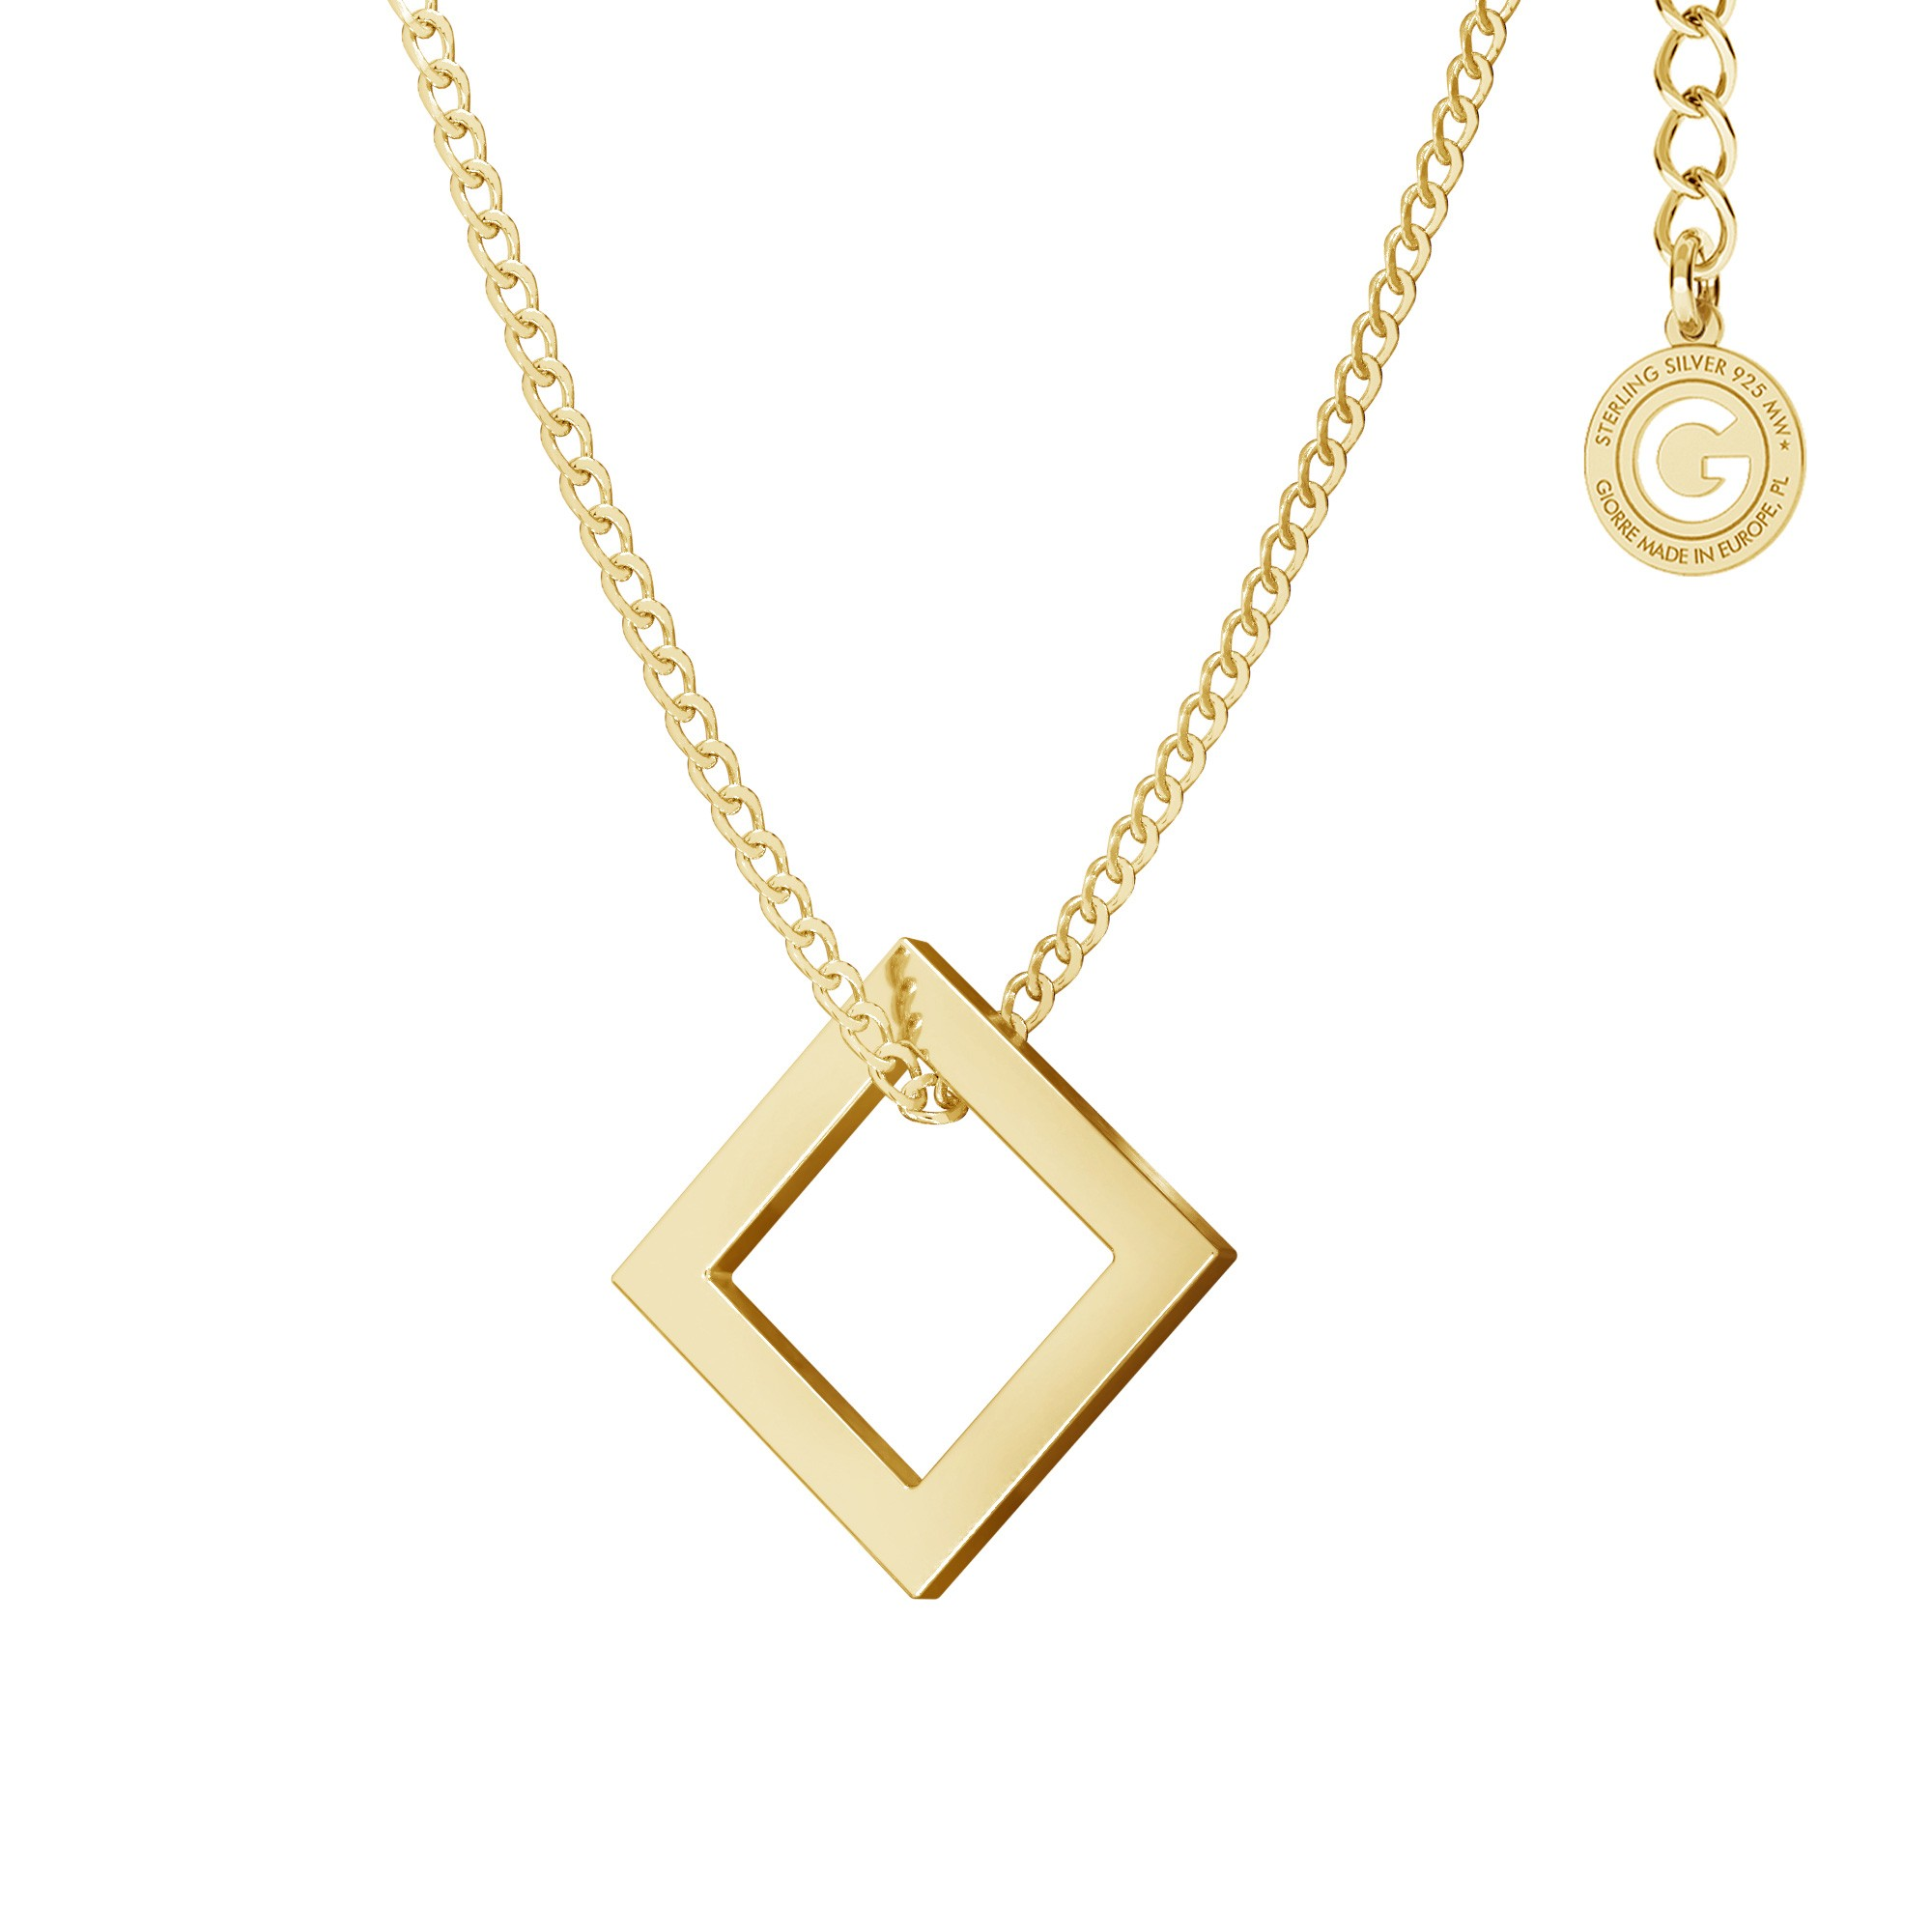 Geometric necklace triangle pendant, sterling silver 925